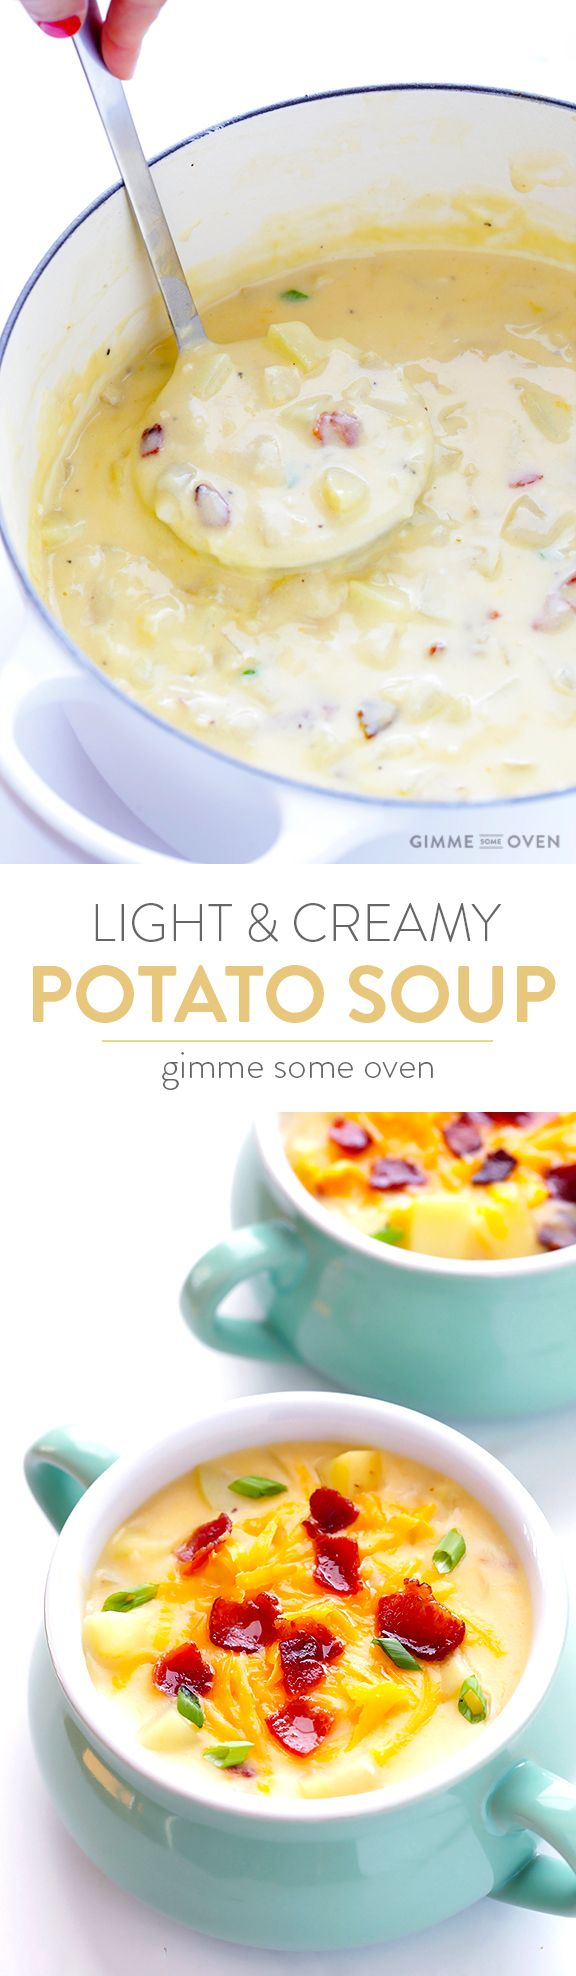 cheap designer clothes from china My all time favorite recipe for classic potato soup   It  39 s simple to make  lightened up with milk instead of cream  and perfectly creamy and delicious    gimmesomeoven com